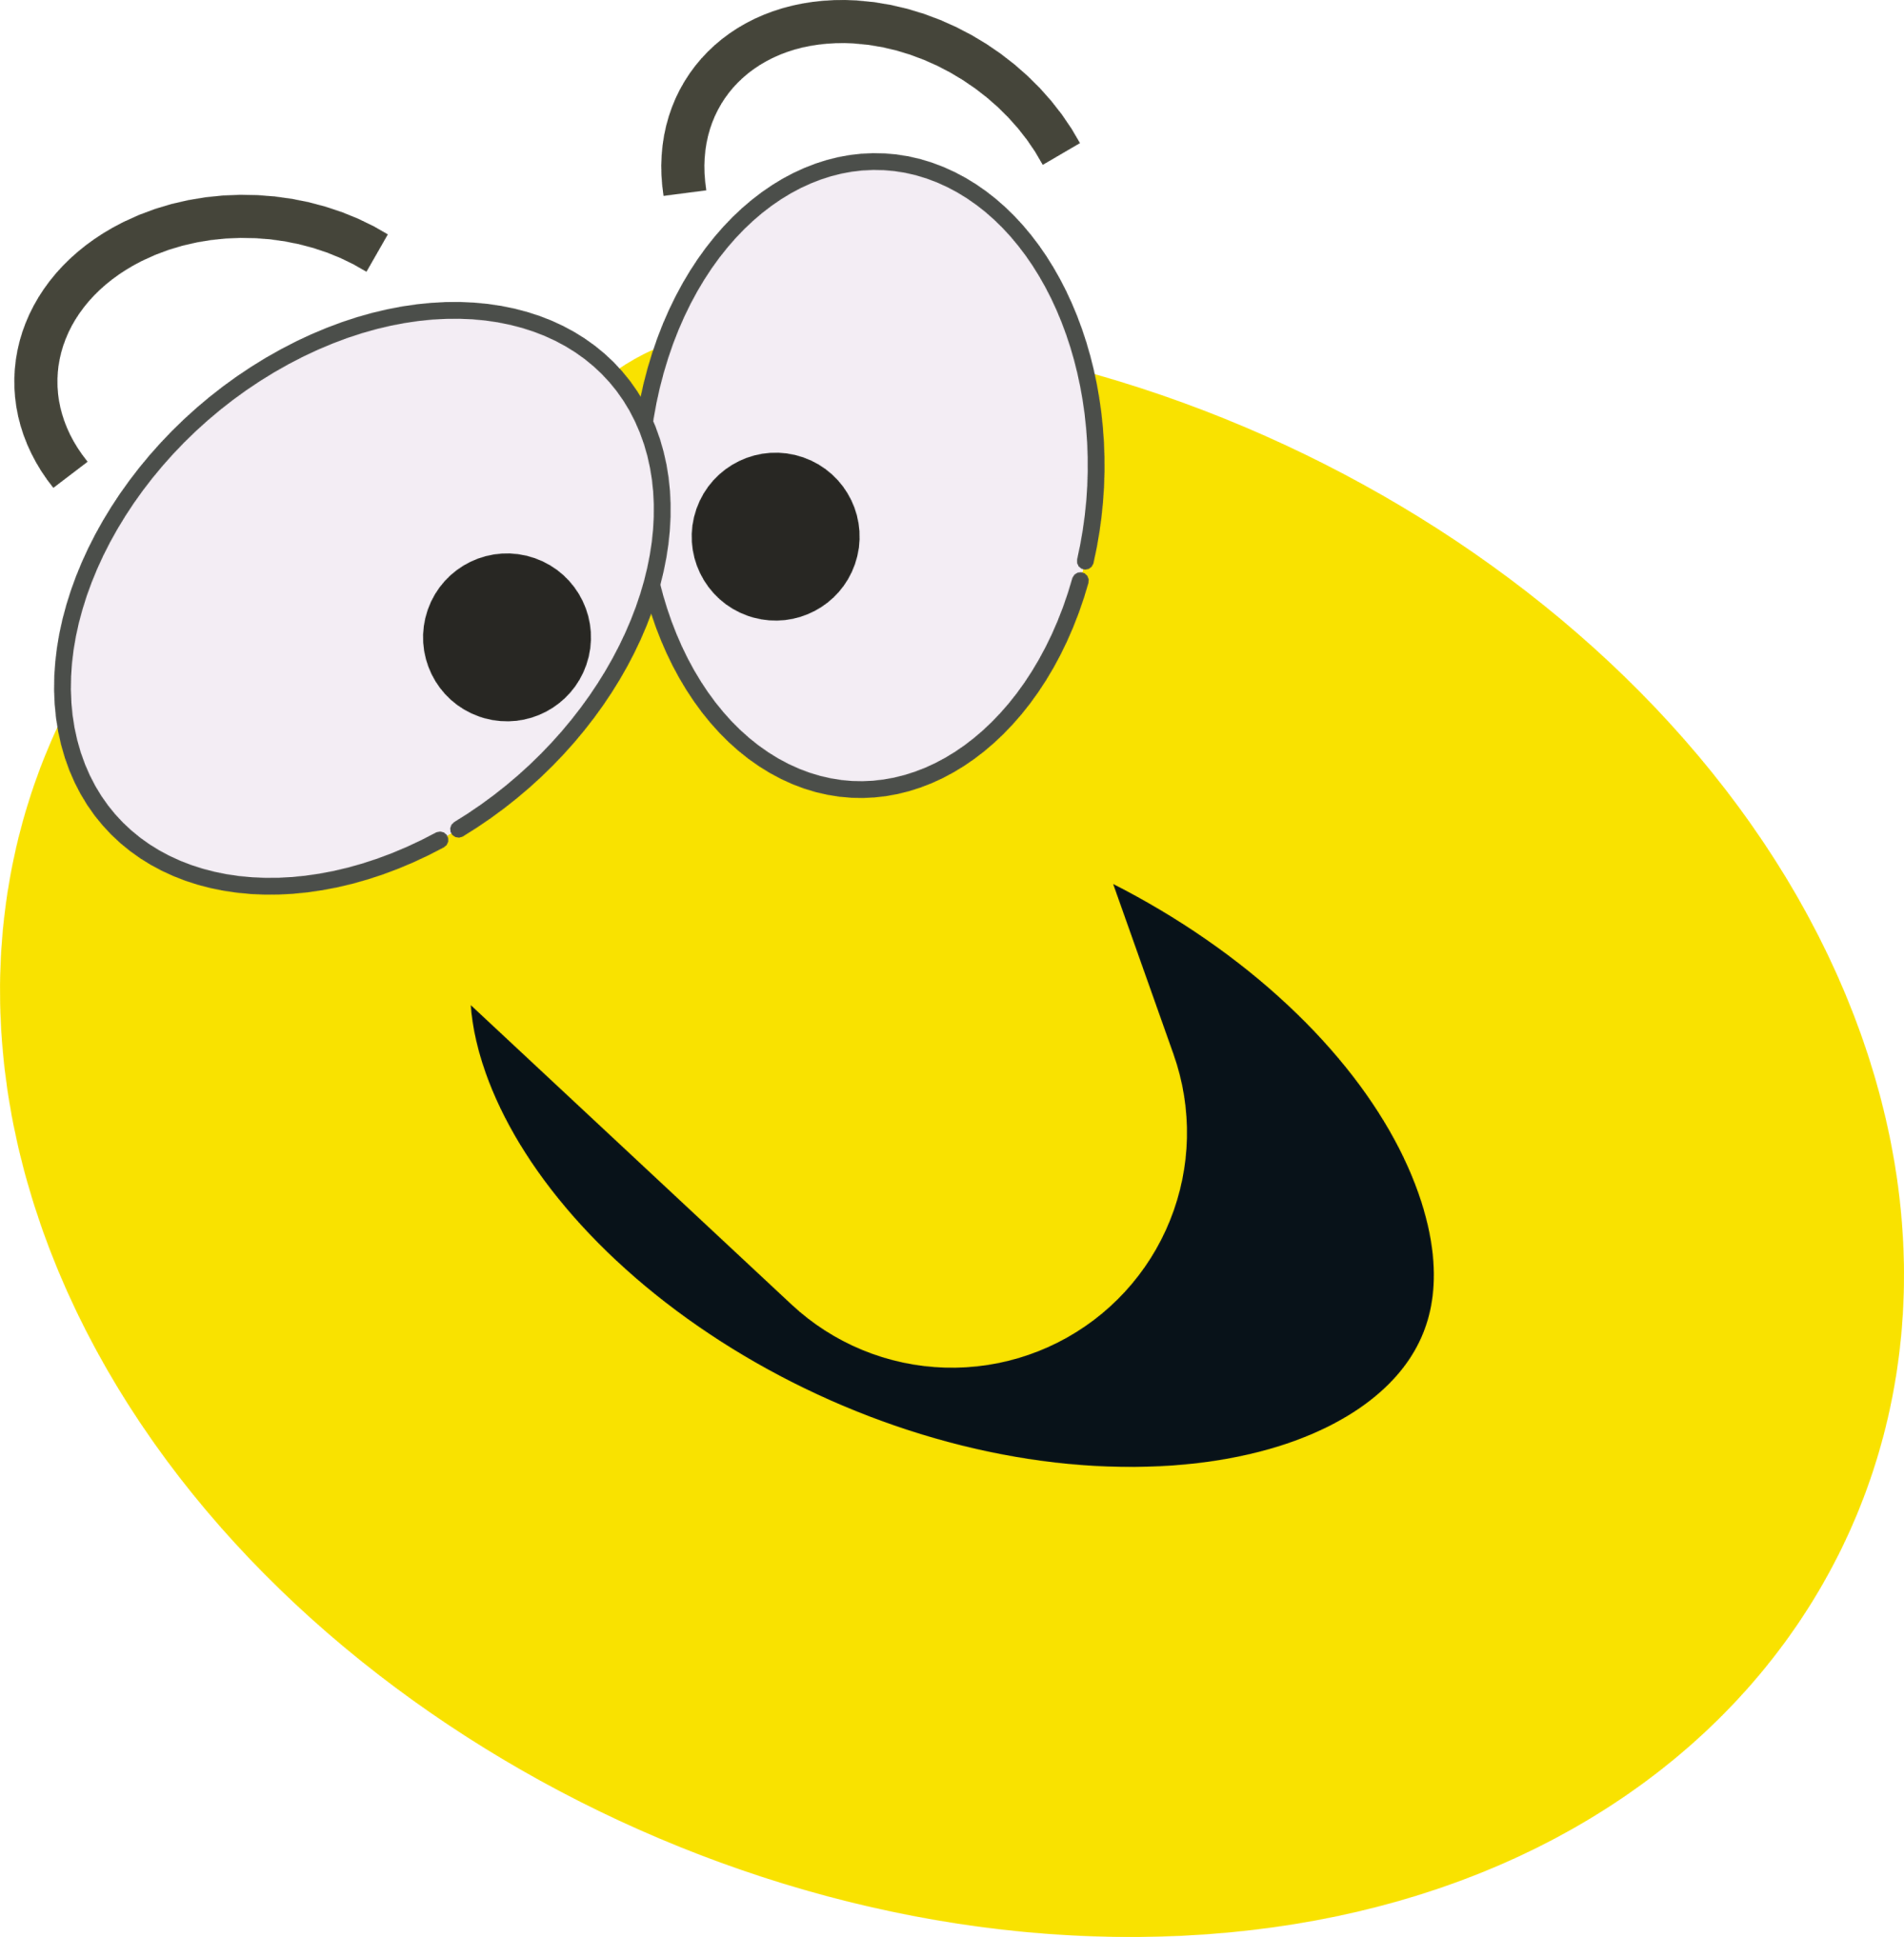 hight resolution of smiley face clip art animated clipart library free clipart images